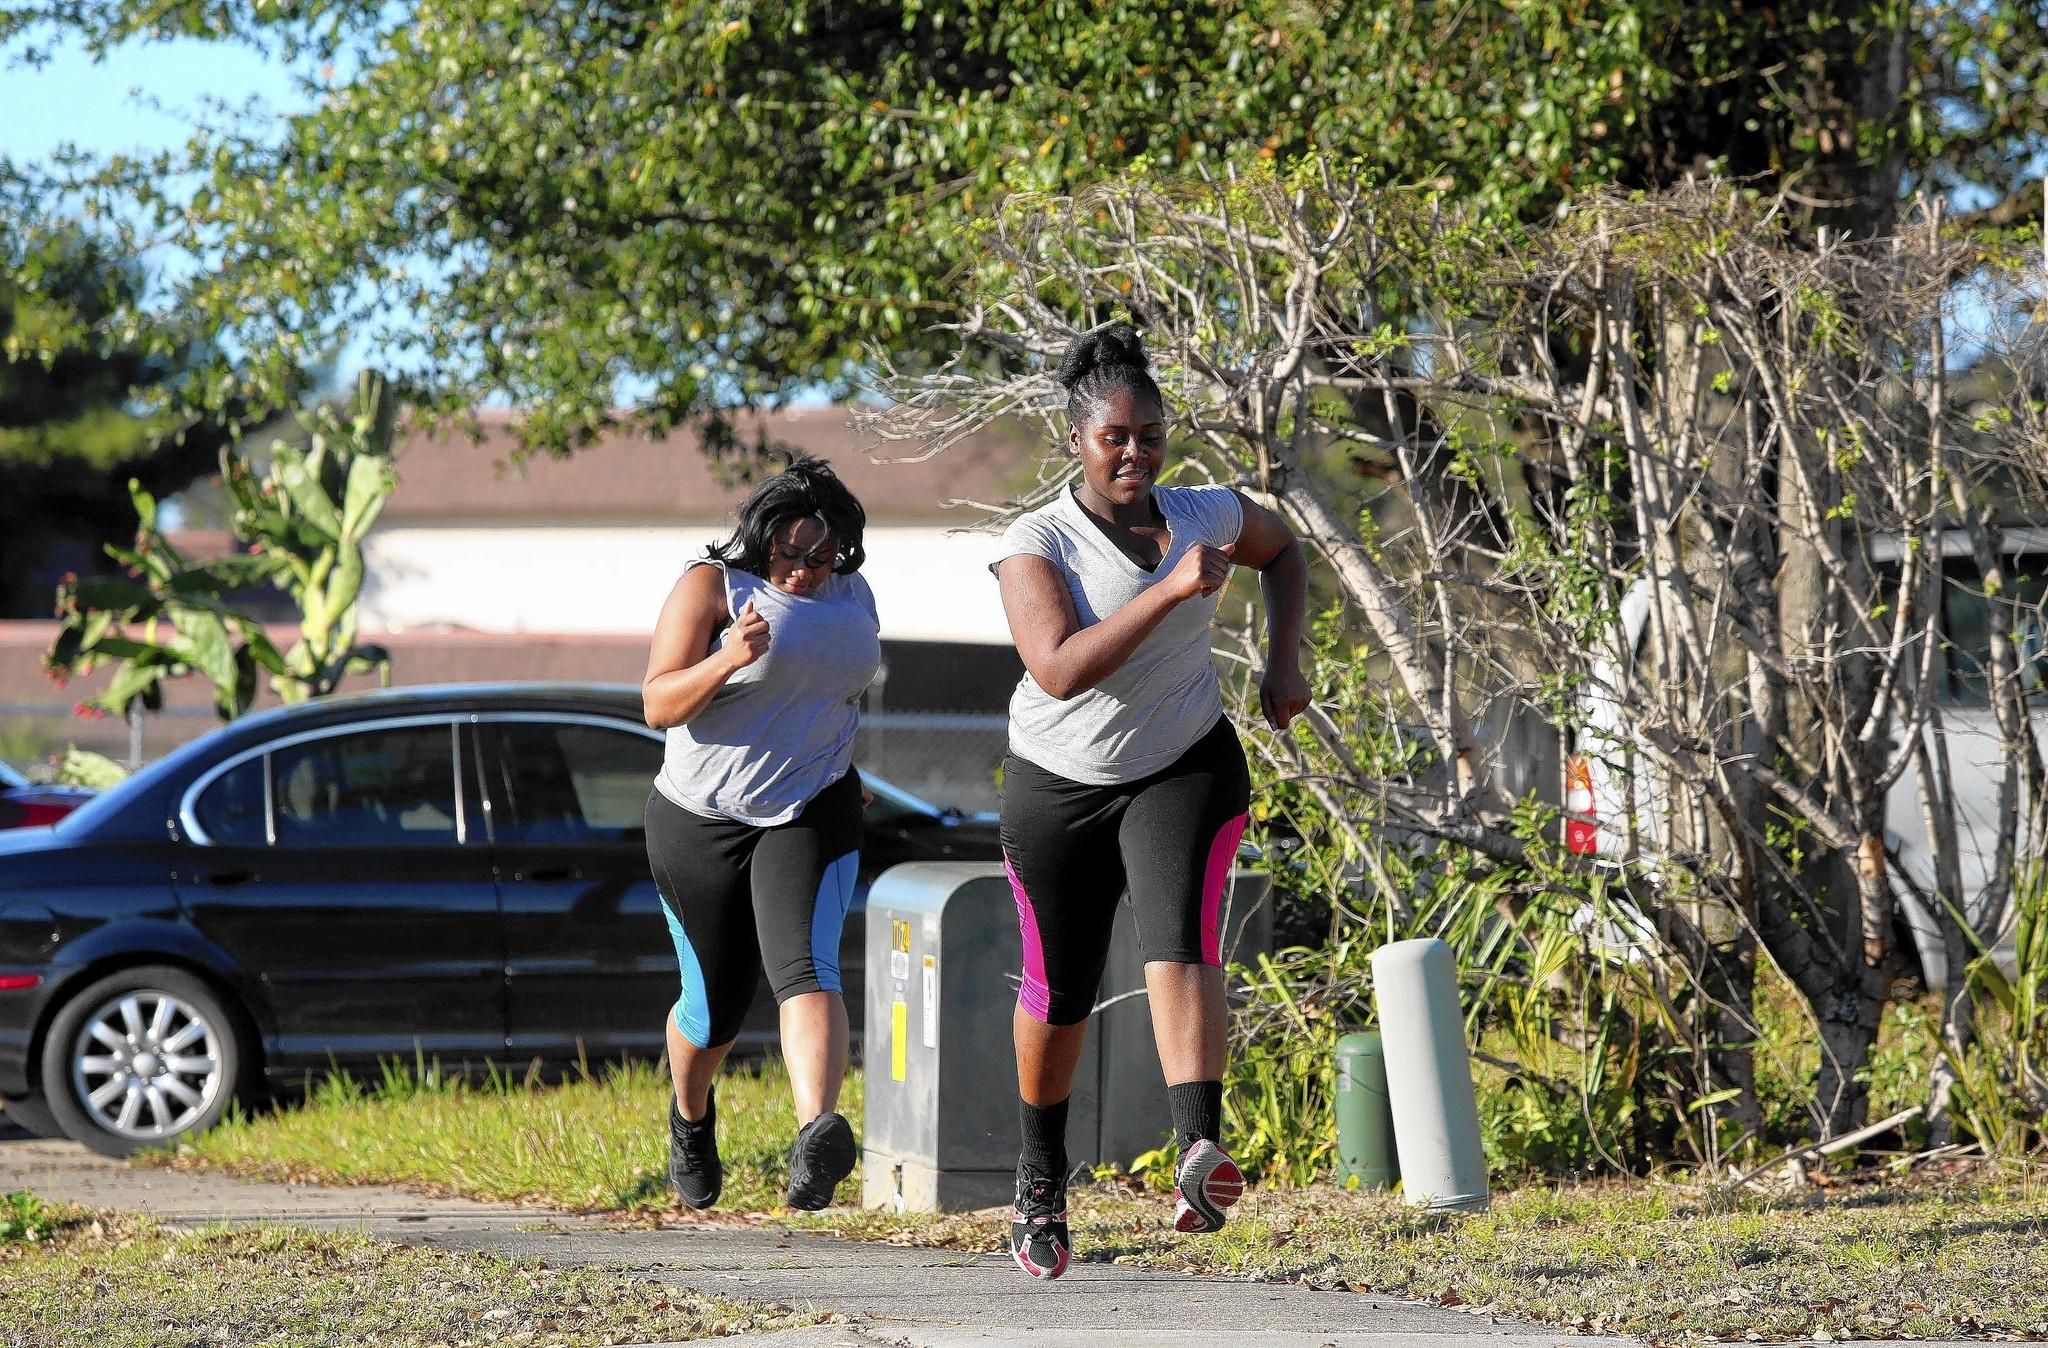 Chellia Cincois, 24, accompanies her sister Julie Phicien, for a jog outside the family's Orlando home, on Monday, February 10, 2014.